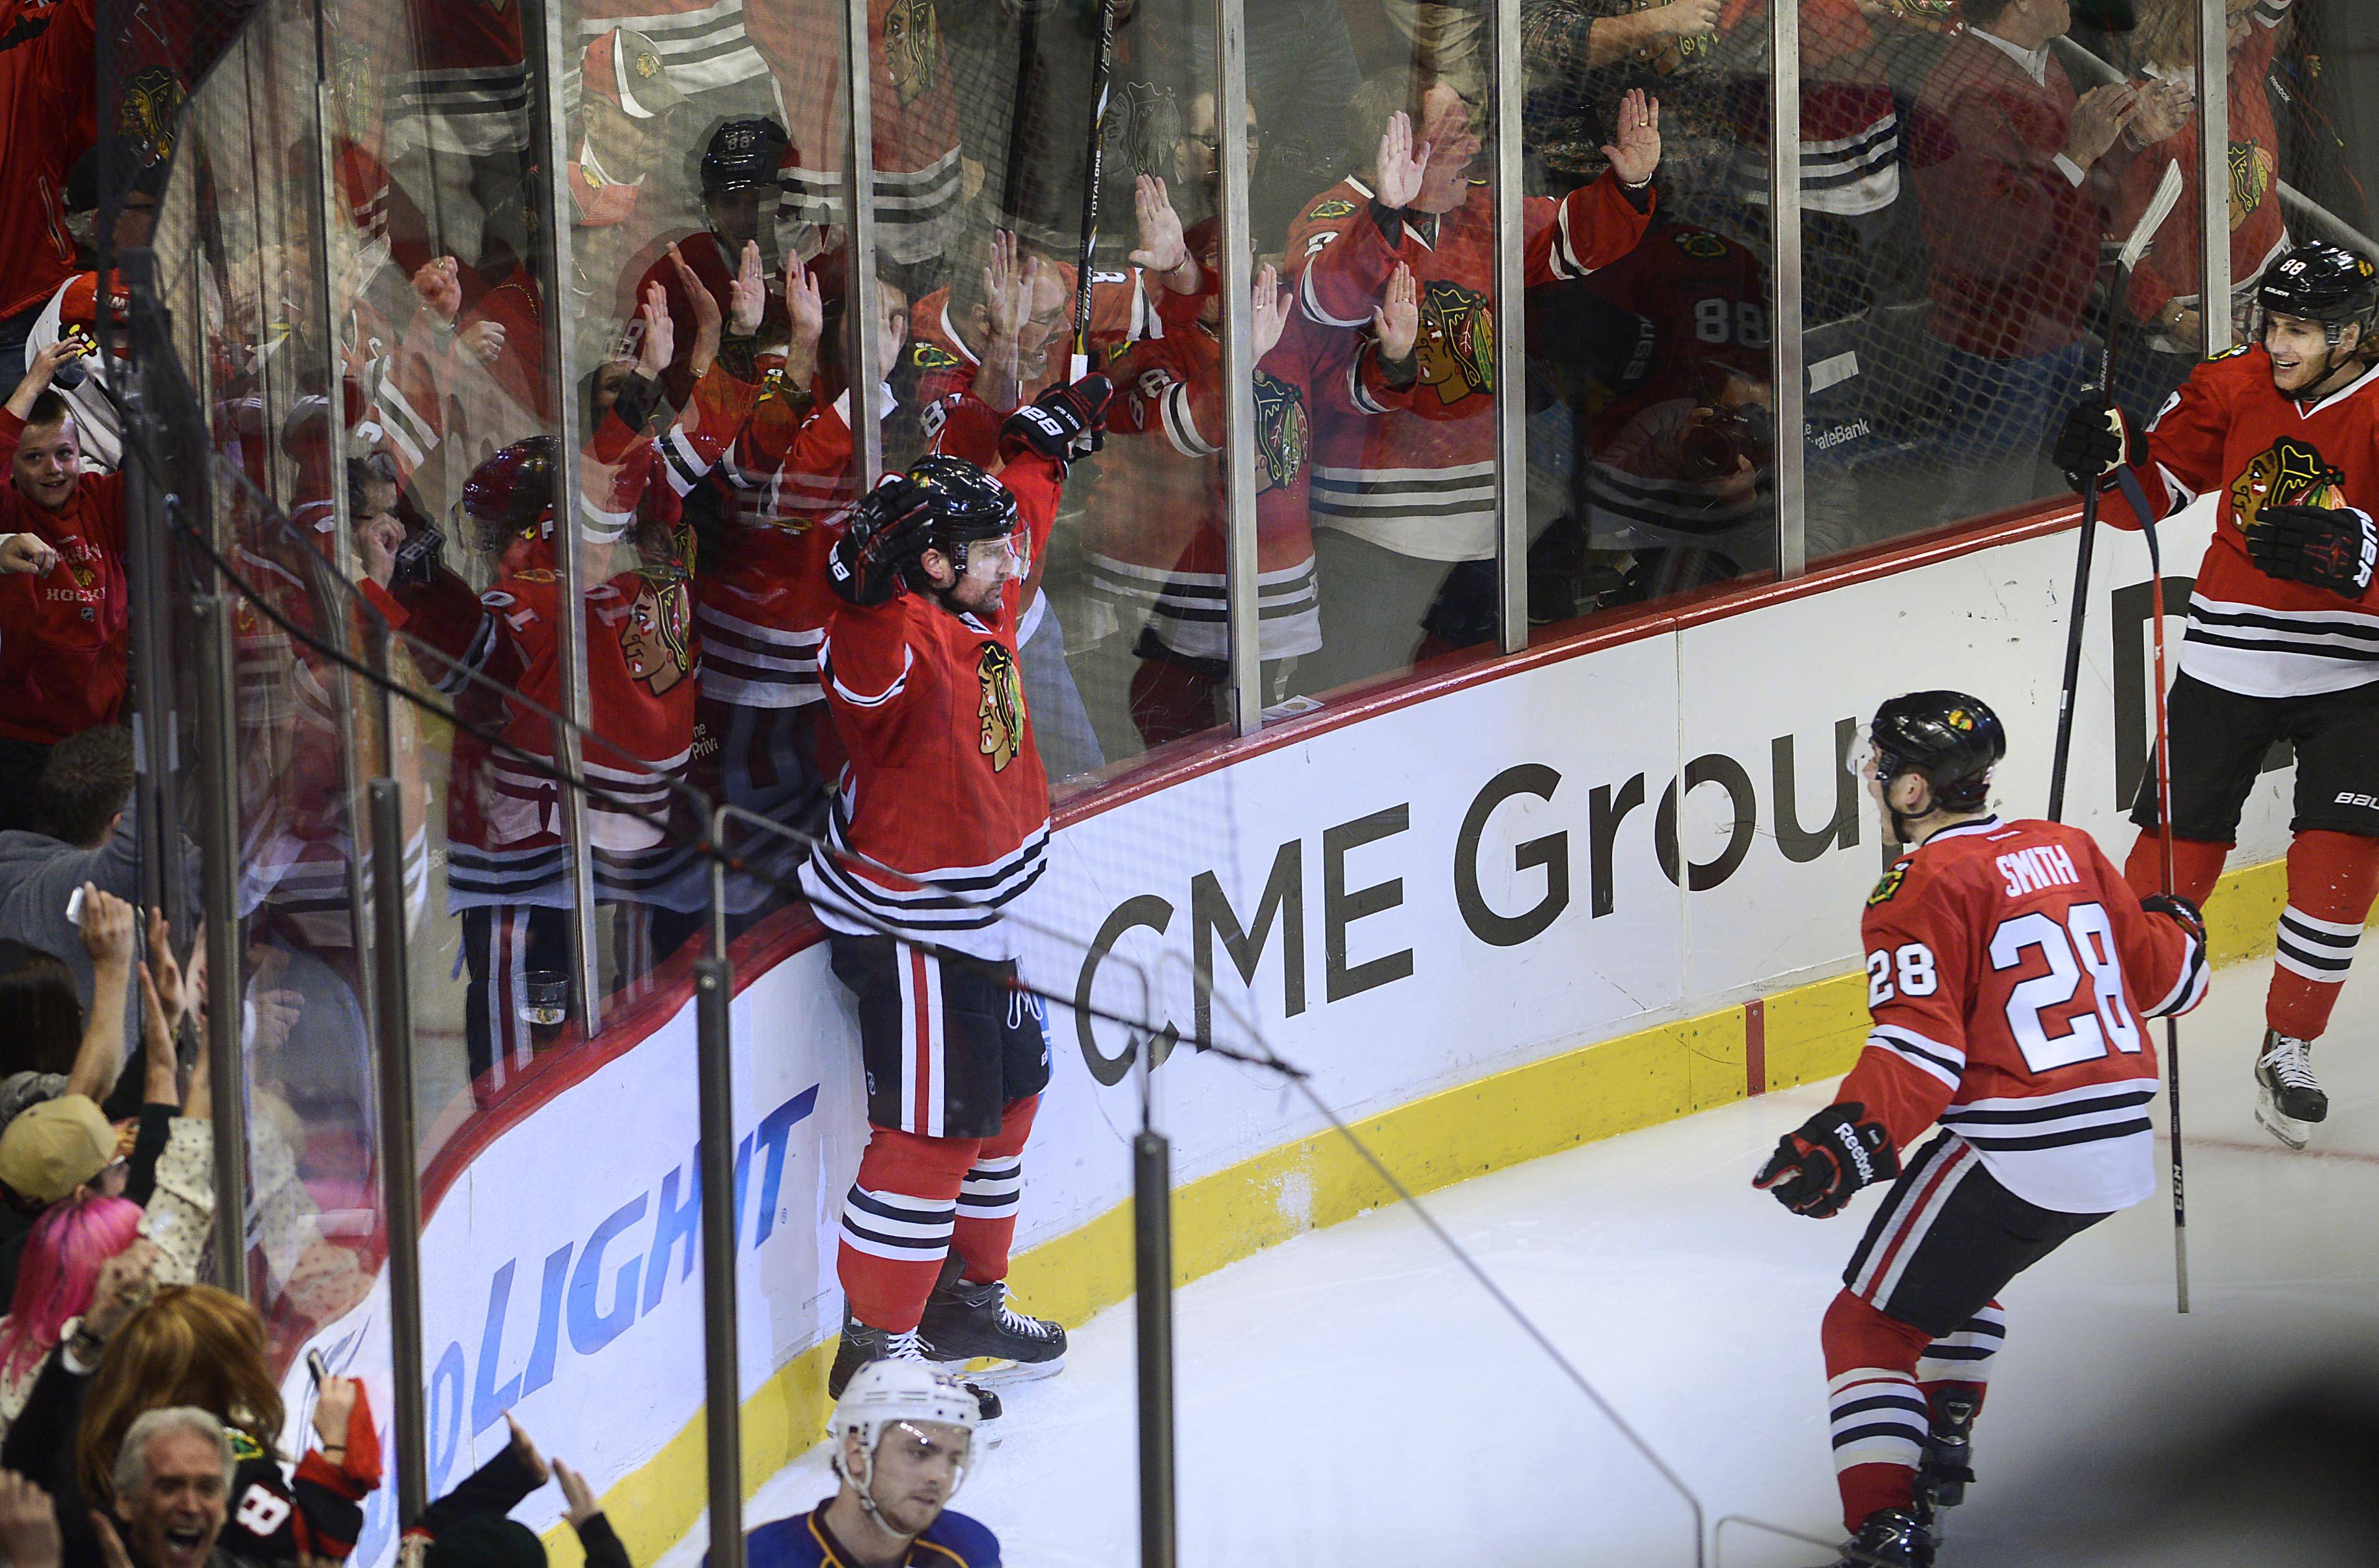 Blackhawks left wing Patrick Sharp celebrates his third-period goal with fans Sunday in Game 6 of the NHL first round playoffs at the United Center in Chicago. Chicago beat the St. Louis Blues to advance to the second round of the playoffs.